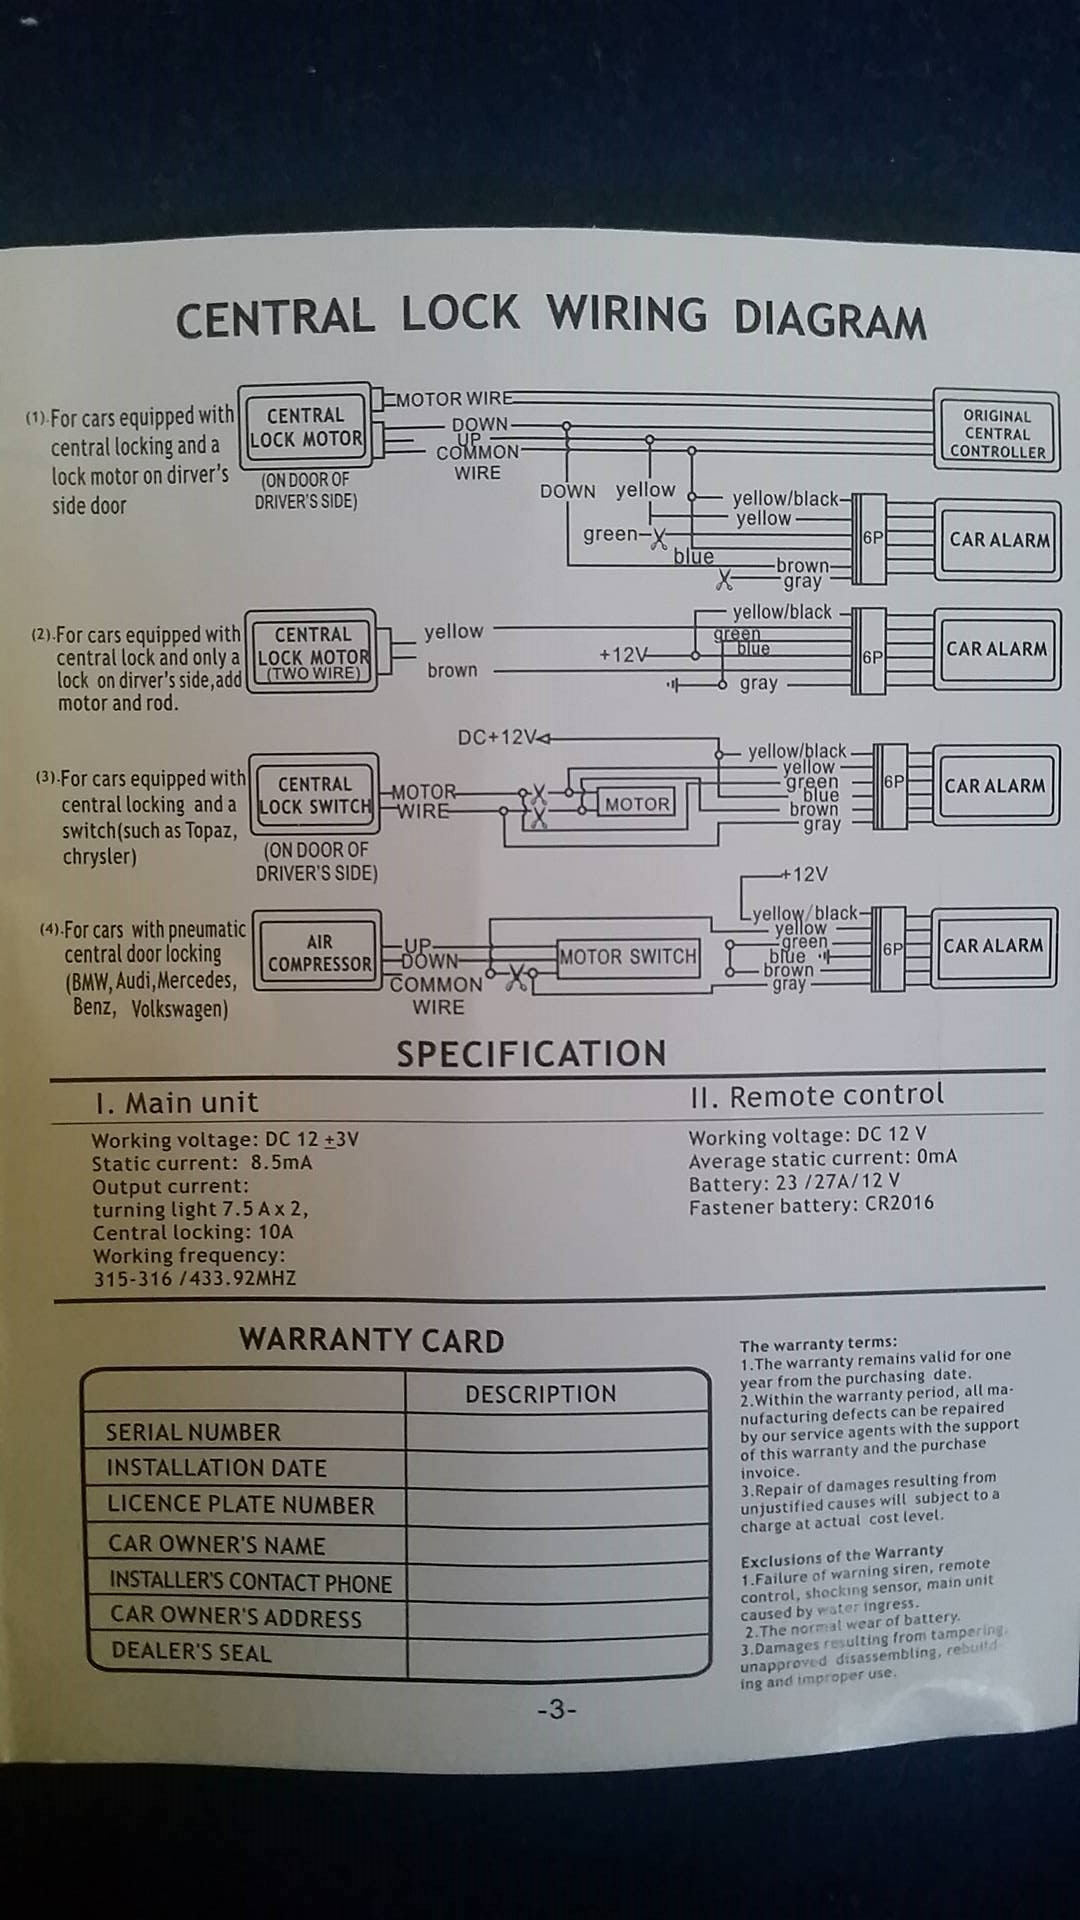 bmw e36 wiring diagram remote central locking bmw e36 wiring diagram #3